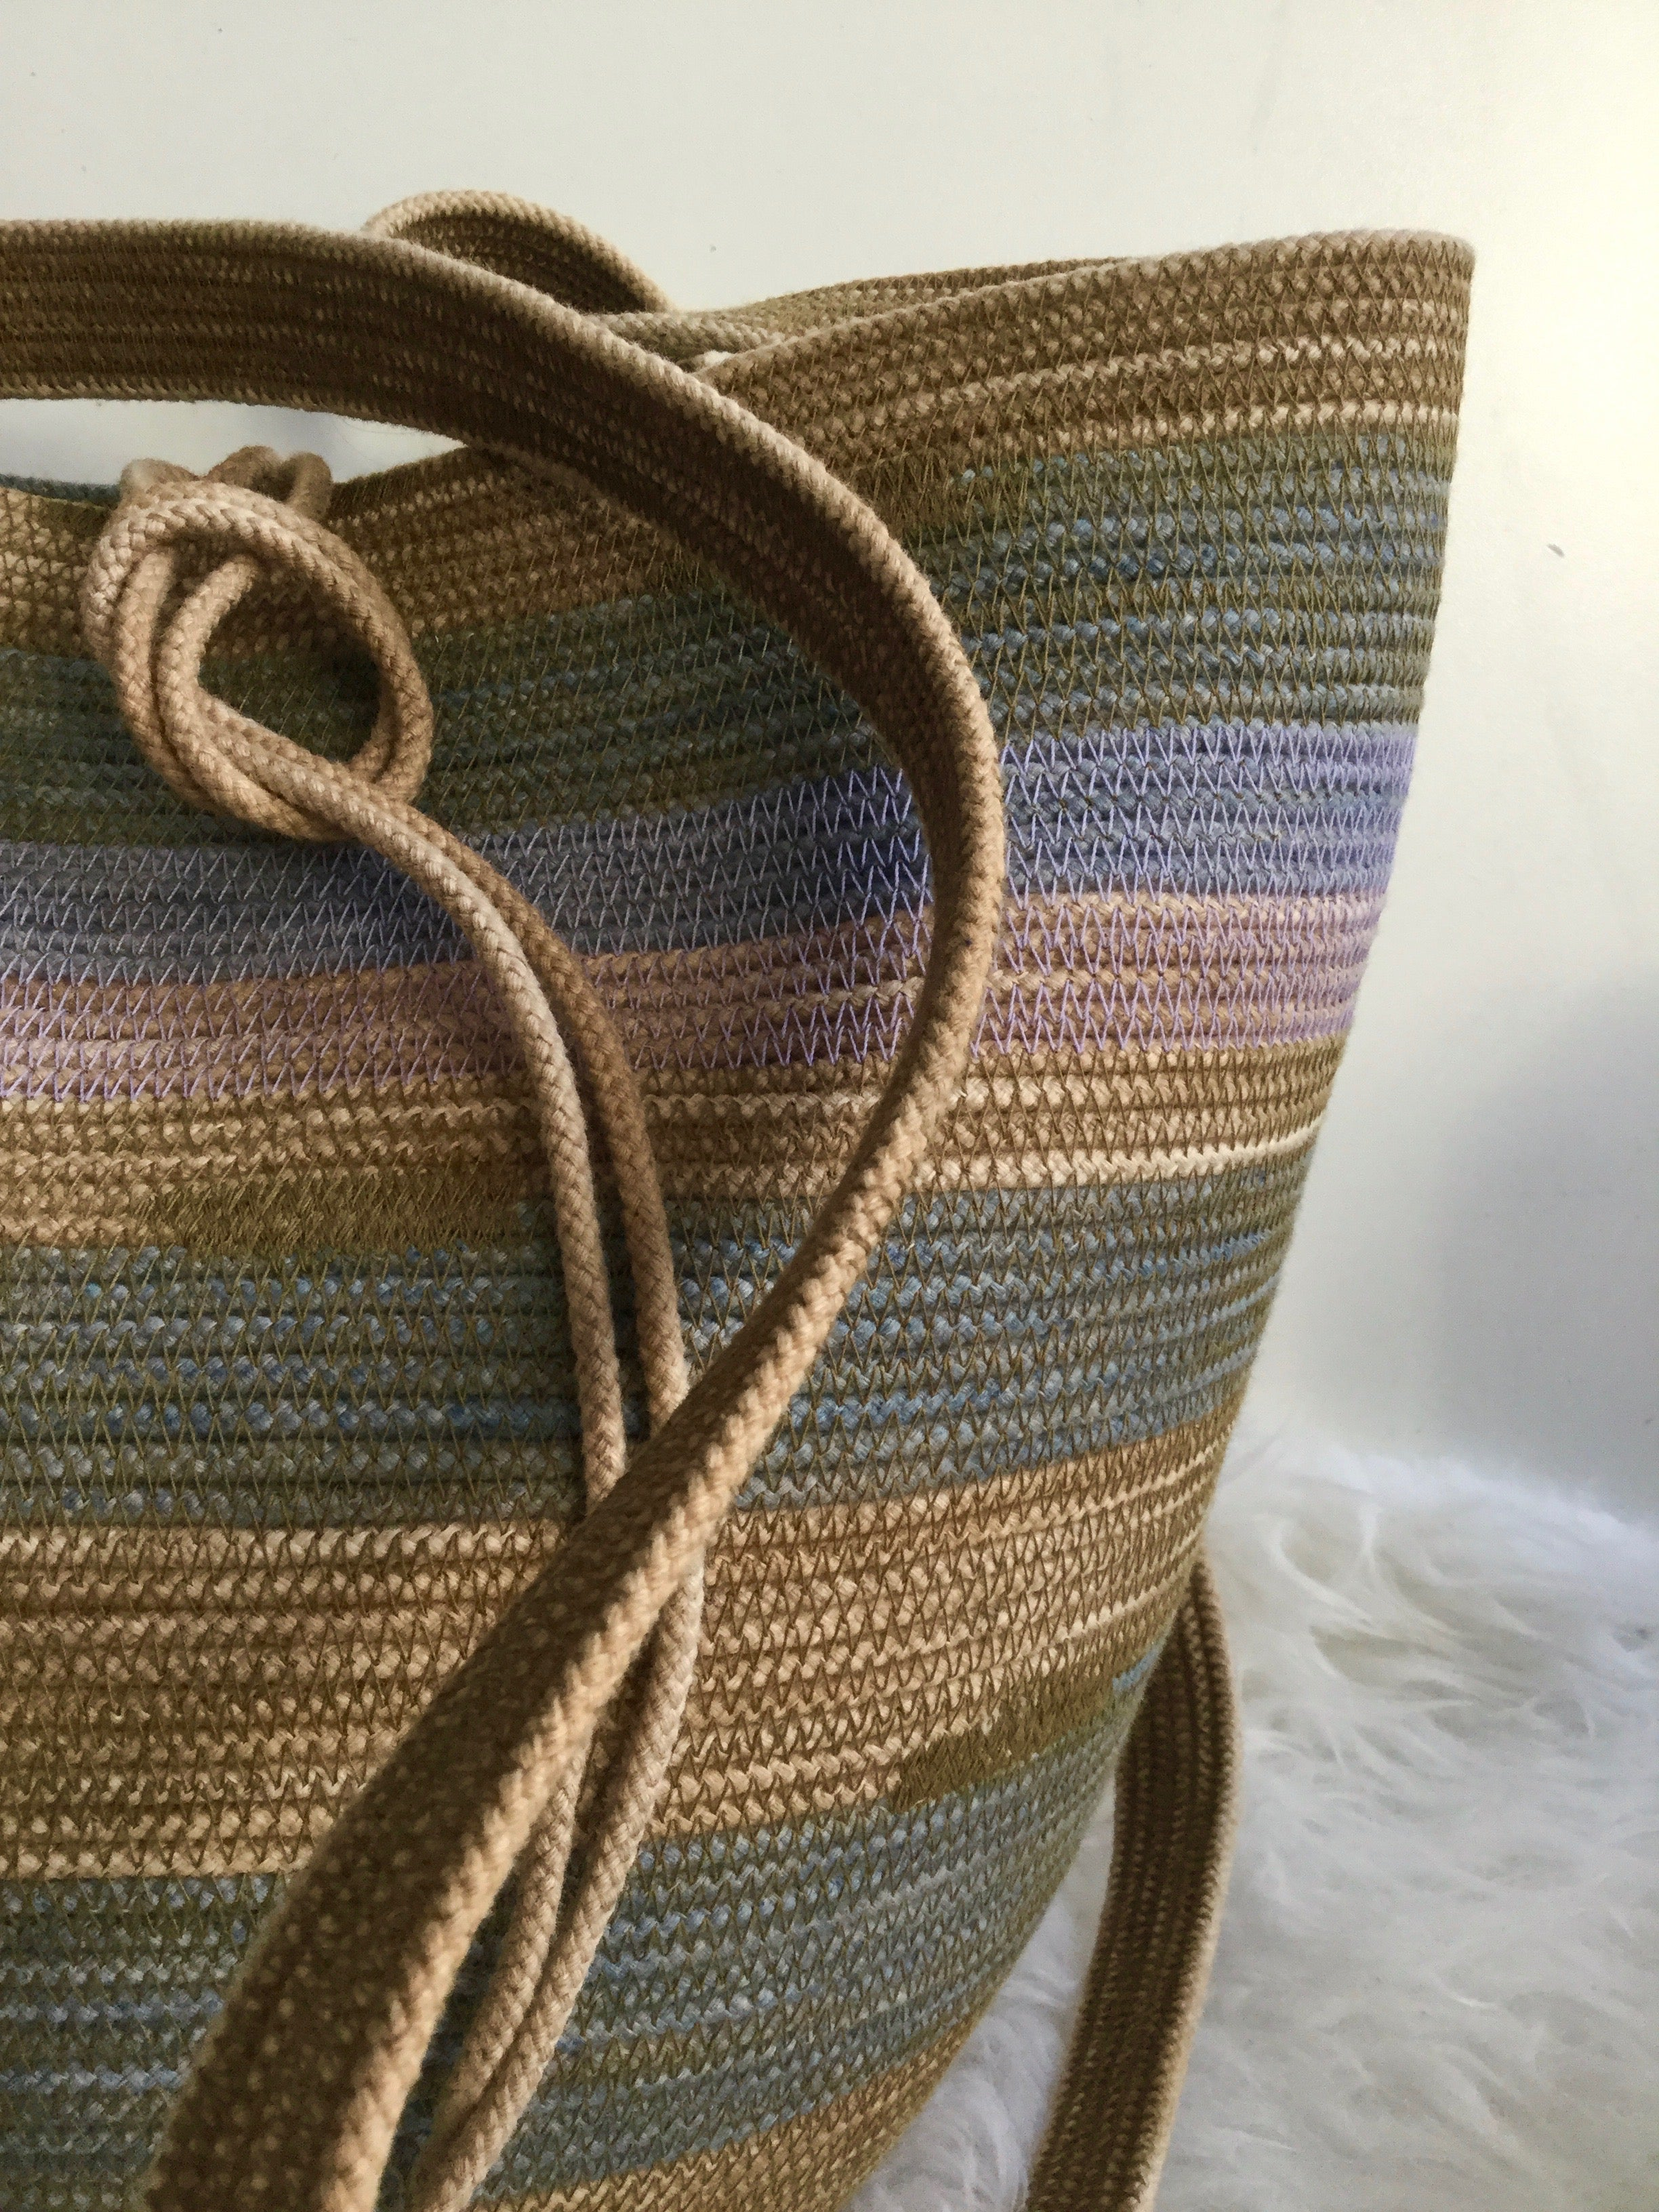 foraging basket made from cotton rope